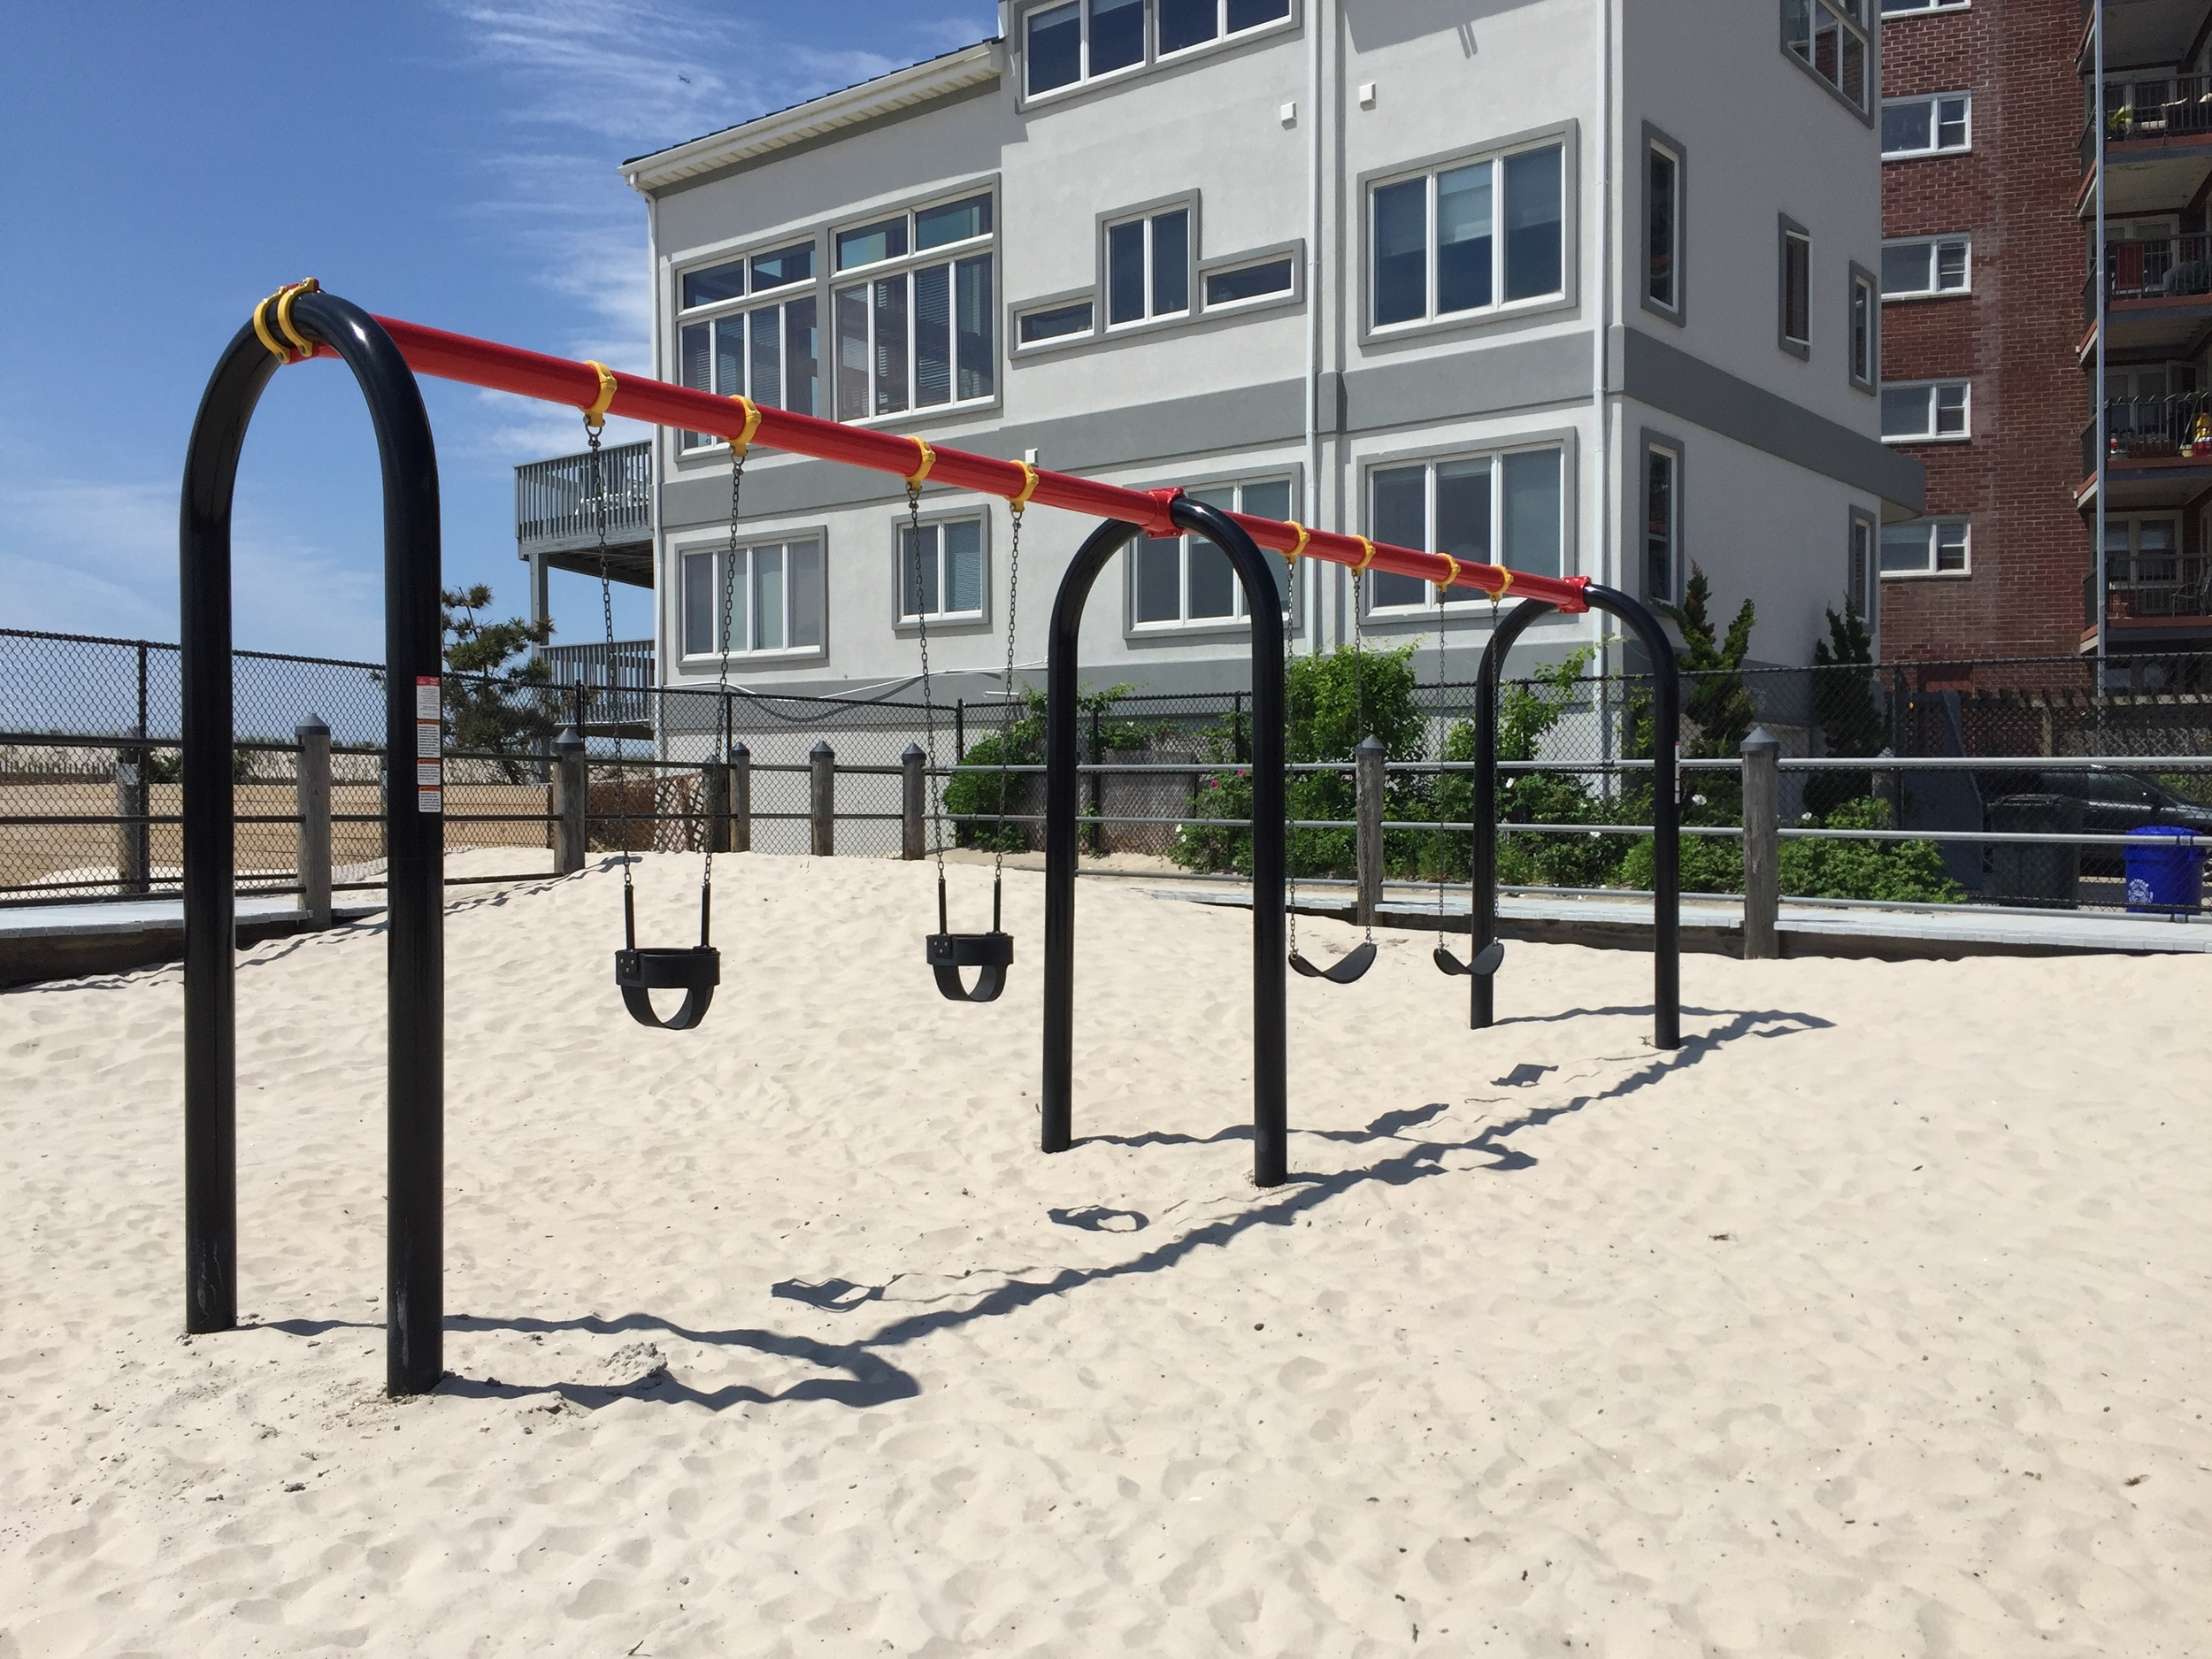 Swings at Pacific Playground